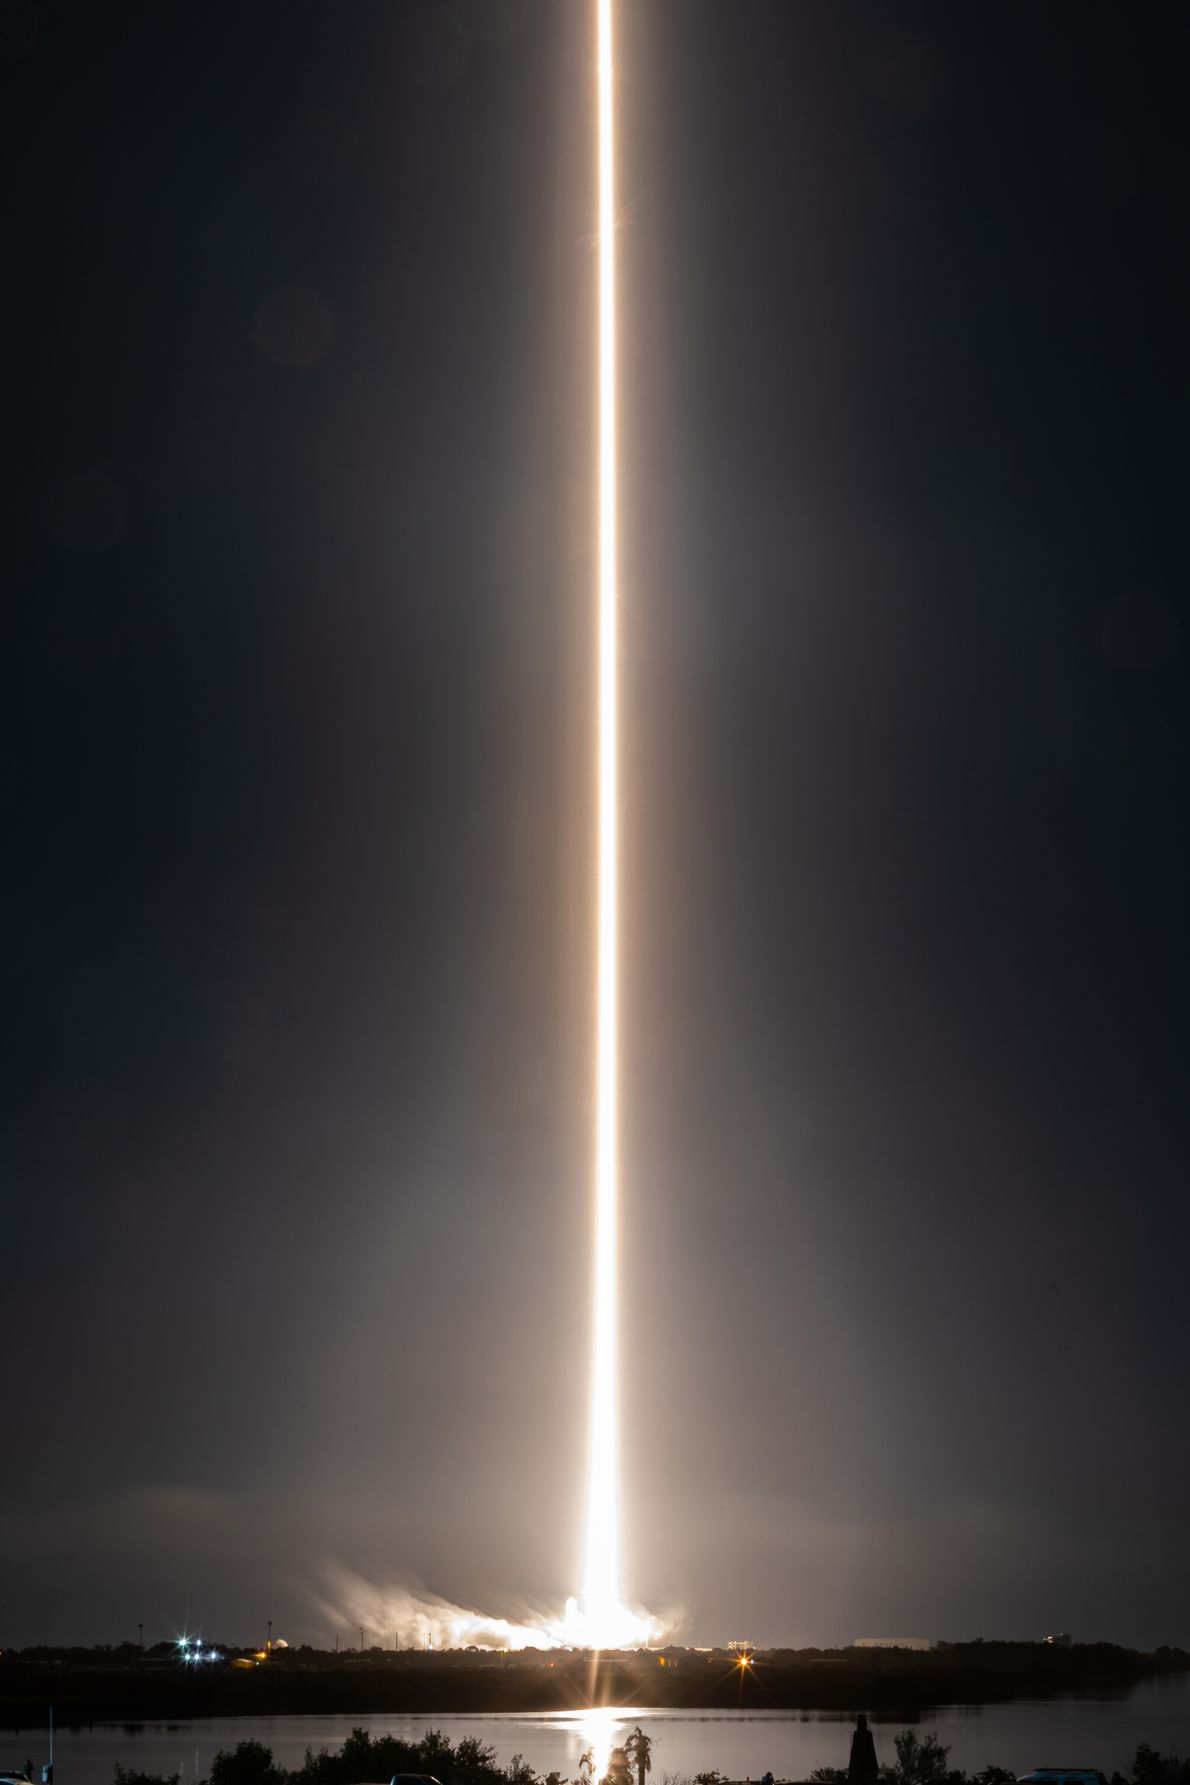 A long-exposure of the SpaceX's Crew Dragon craft lifting off into orbit from Kennedy Space Center ...